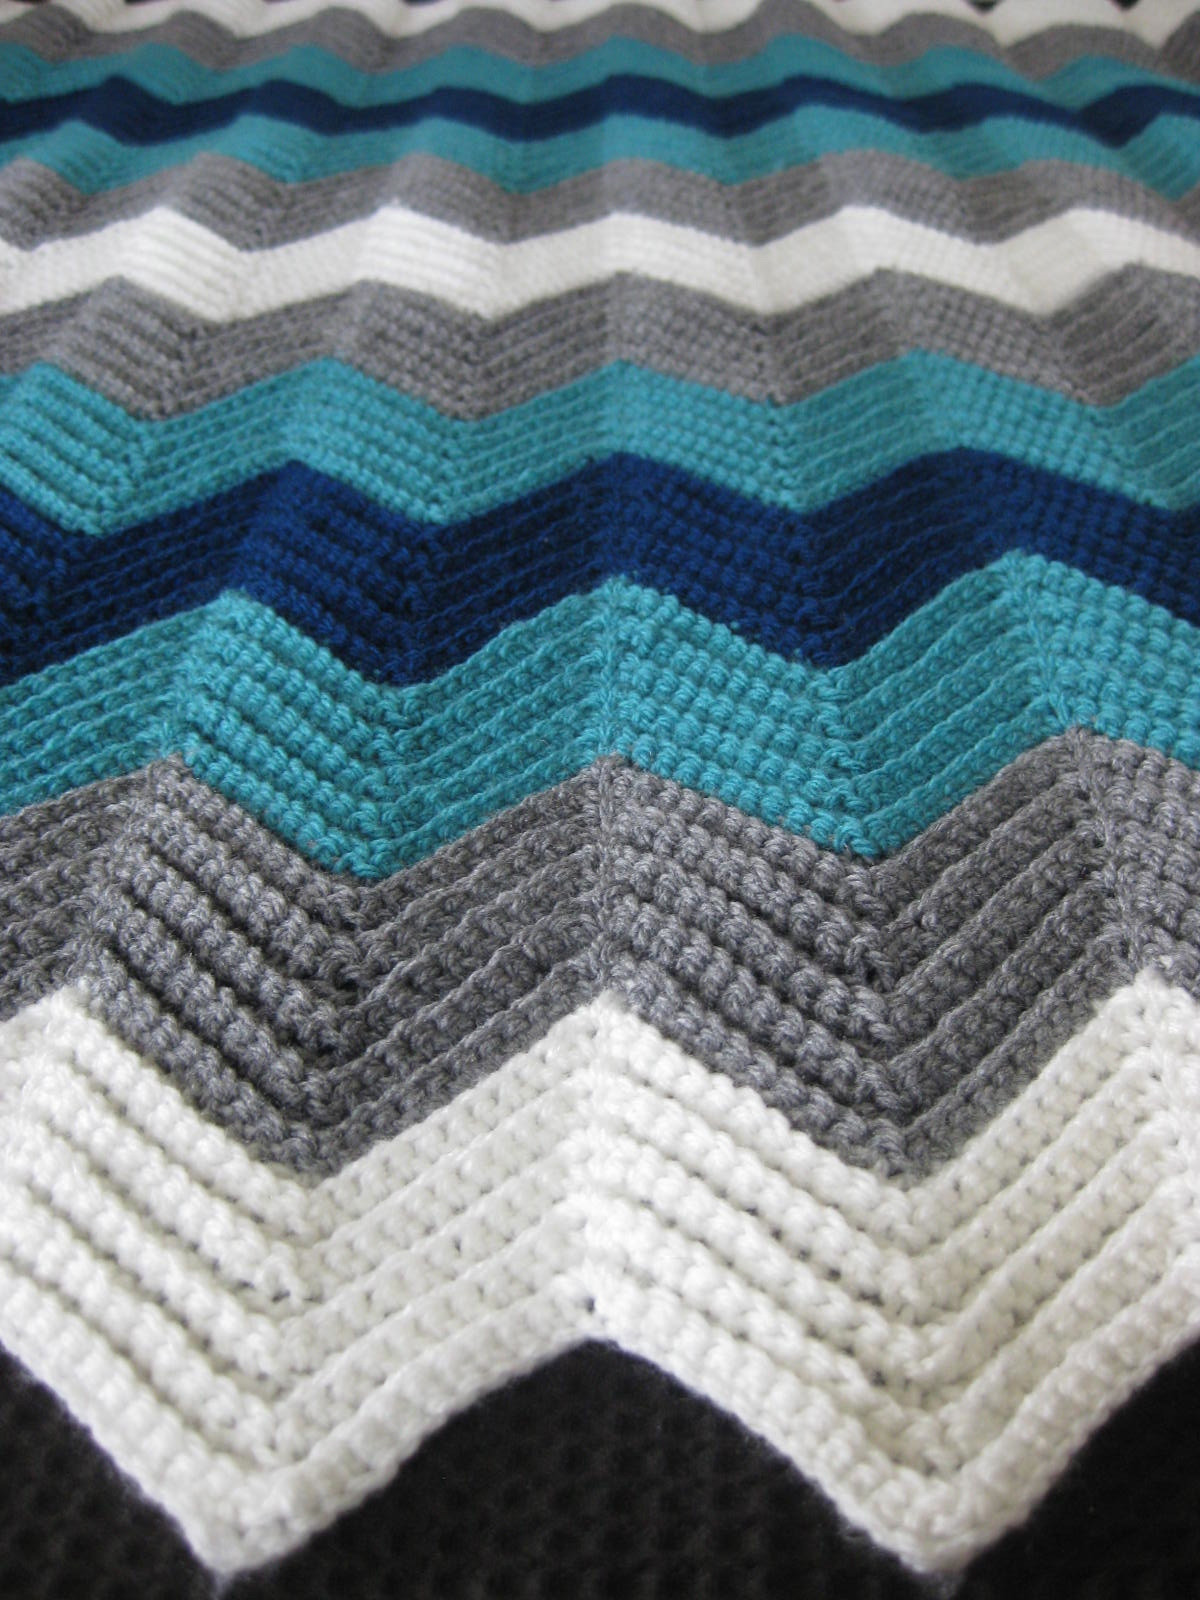 Single Crochet Patterns Inspirational Chevron Afghan 1 Of Single Crochet Patterns Inspirational Zig Zag Crochet Patterns Free Patterns